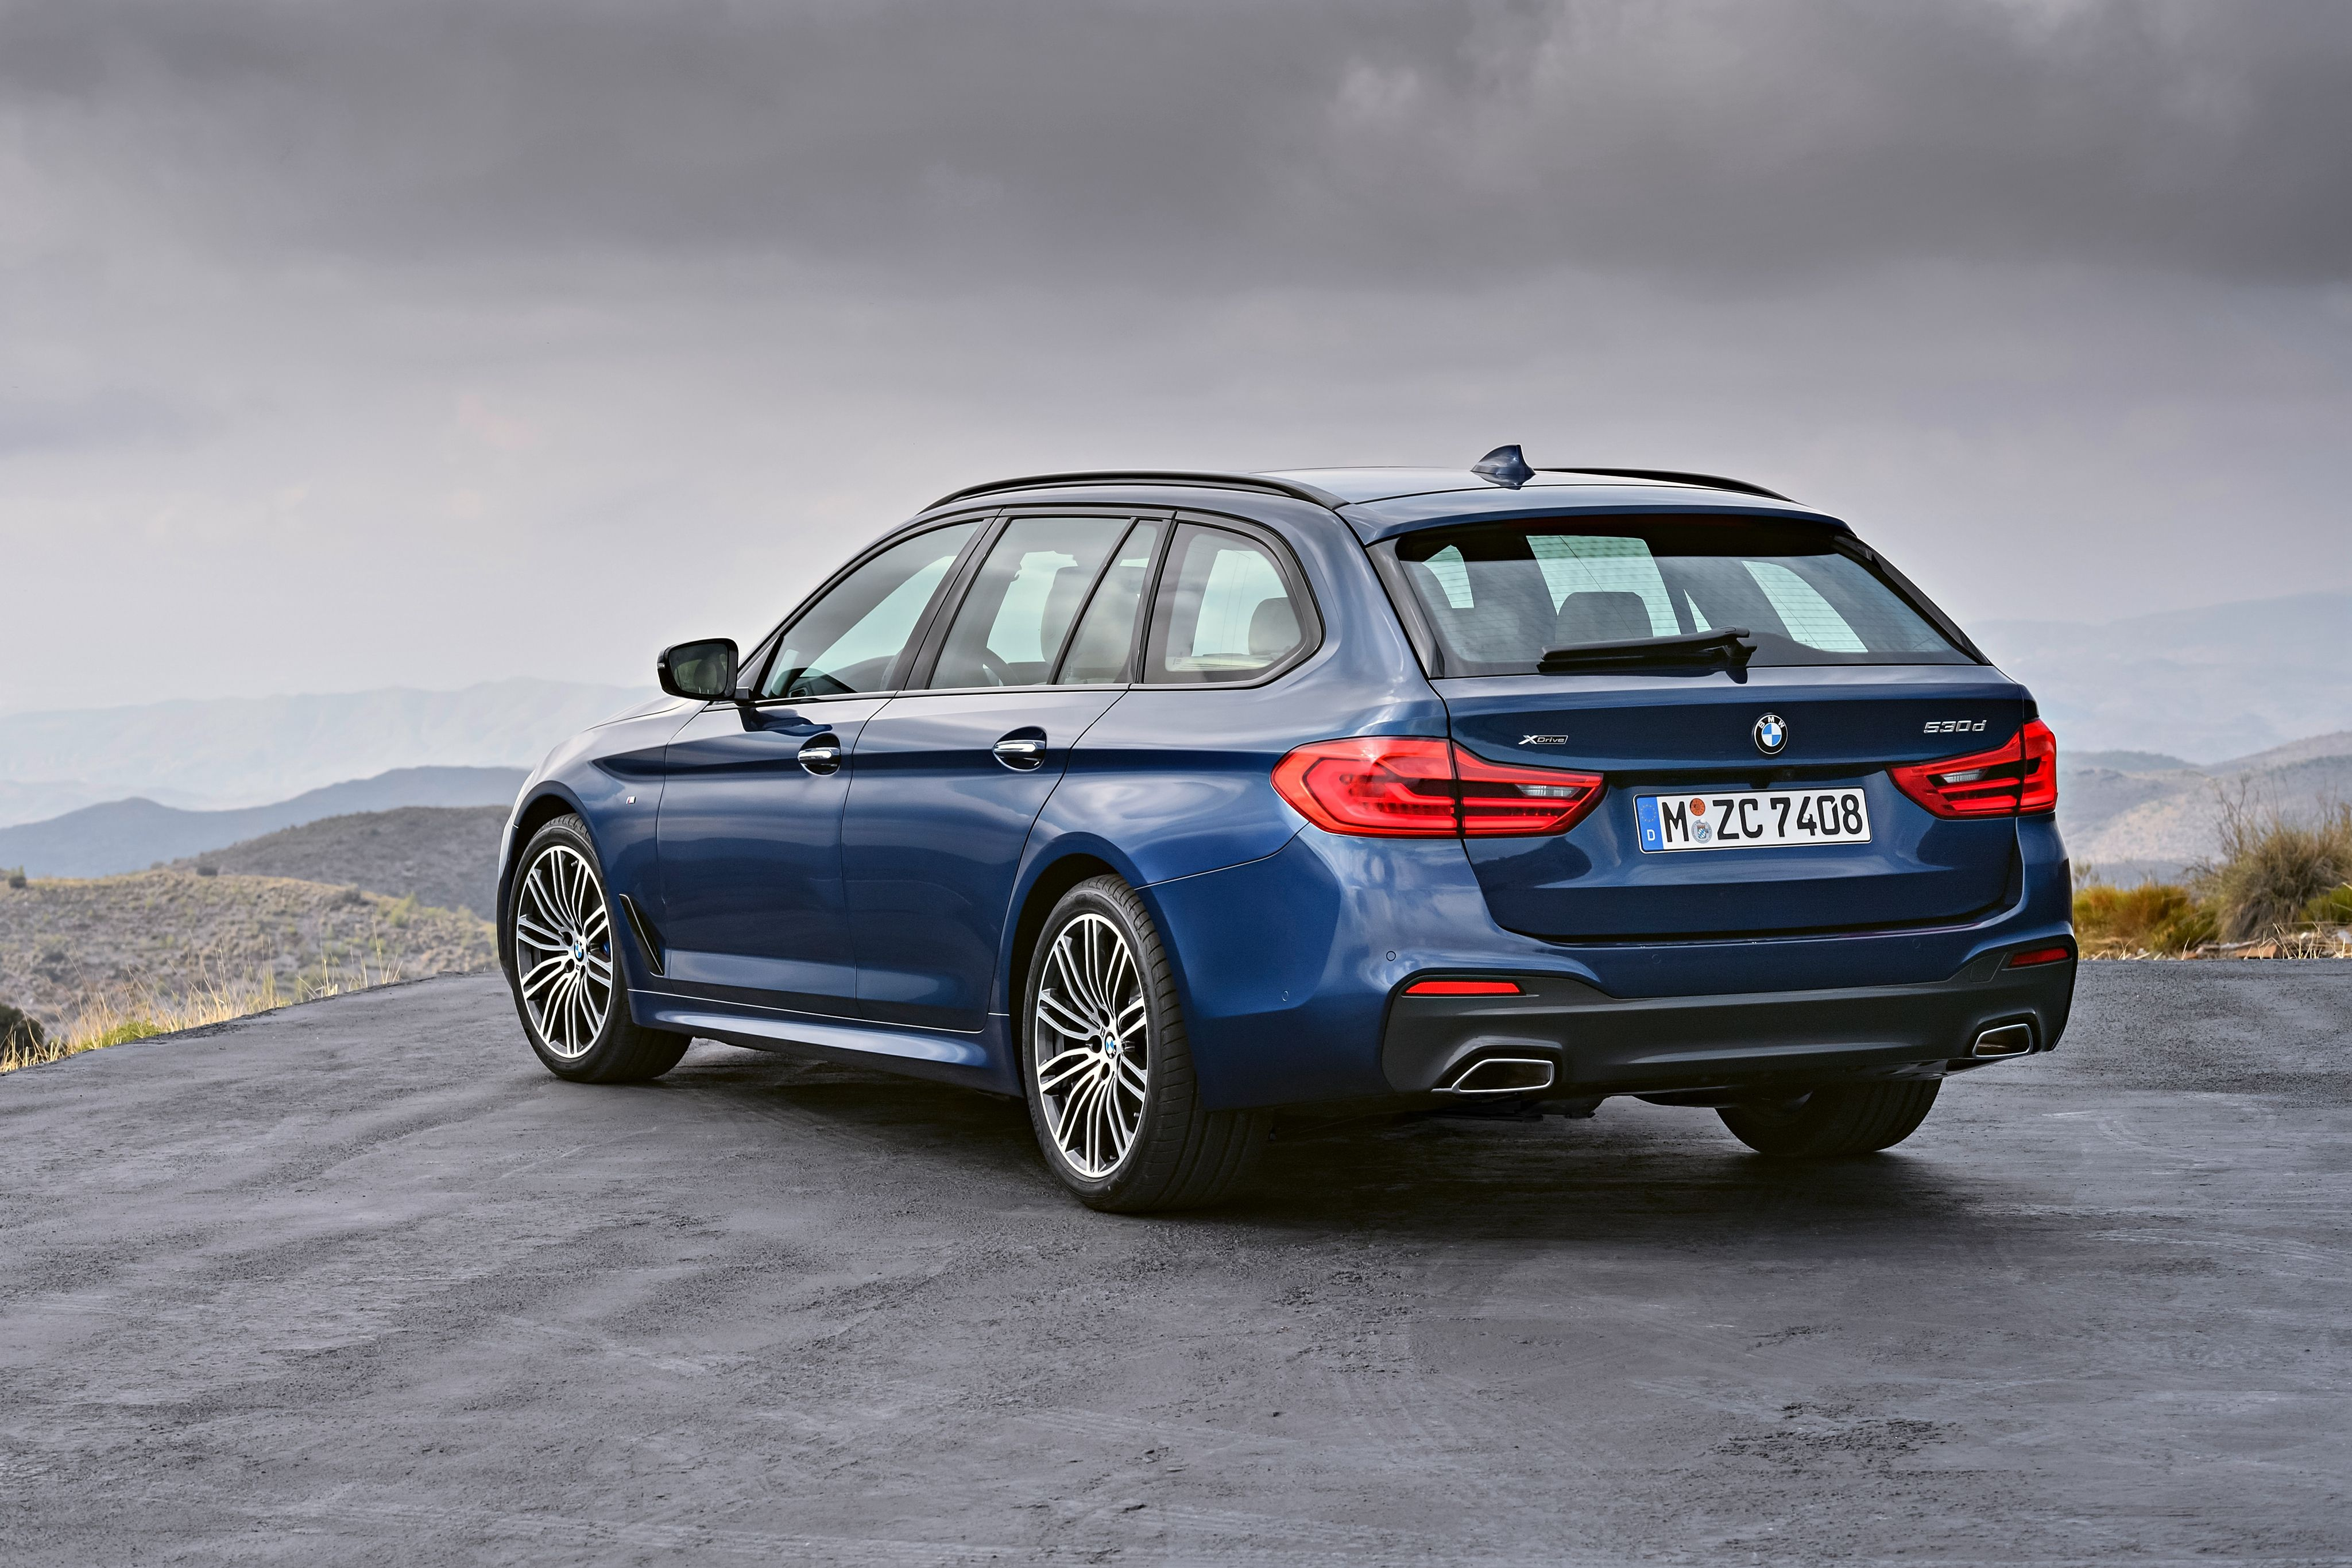 2017 bmw 5 series touring an automotive webzine with daily updates on new and future vehicles motor shows the tuning industry classic cars and more